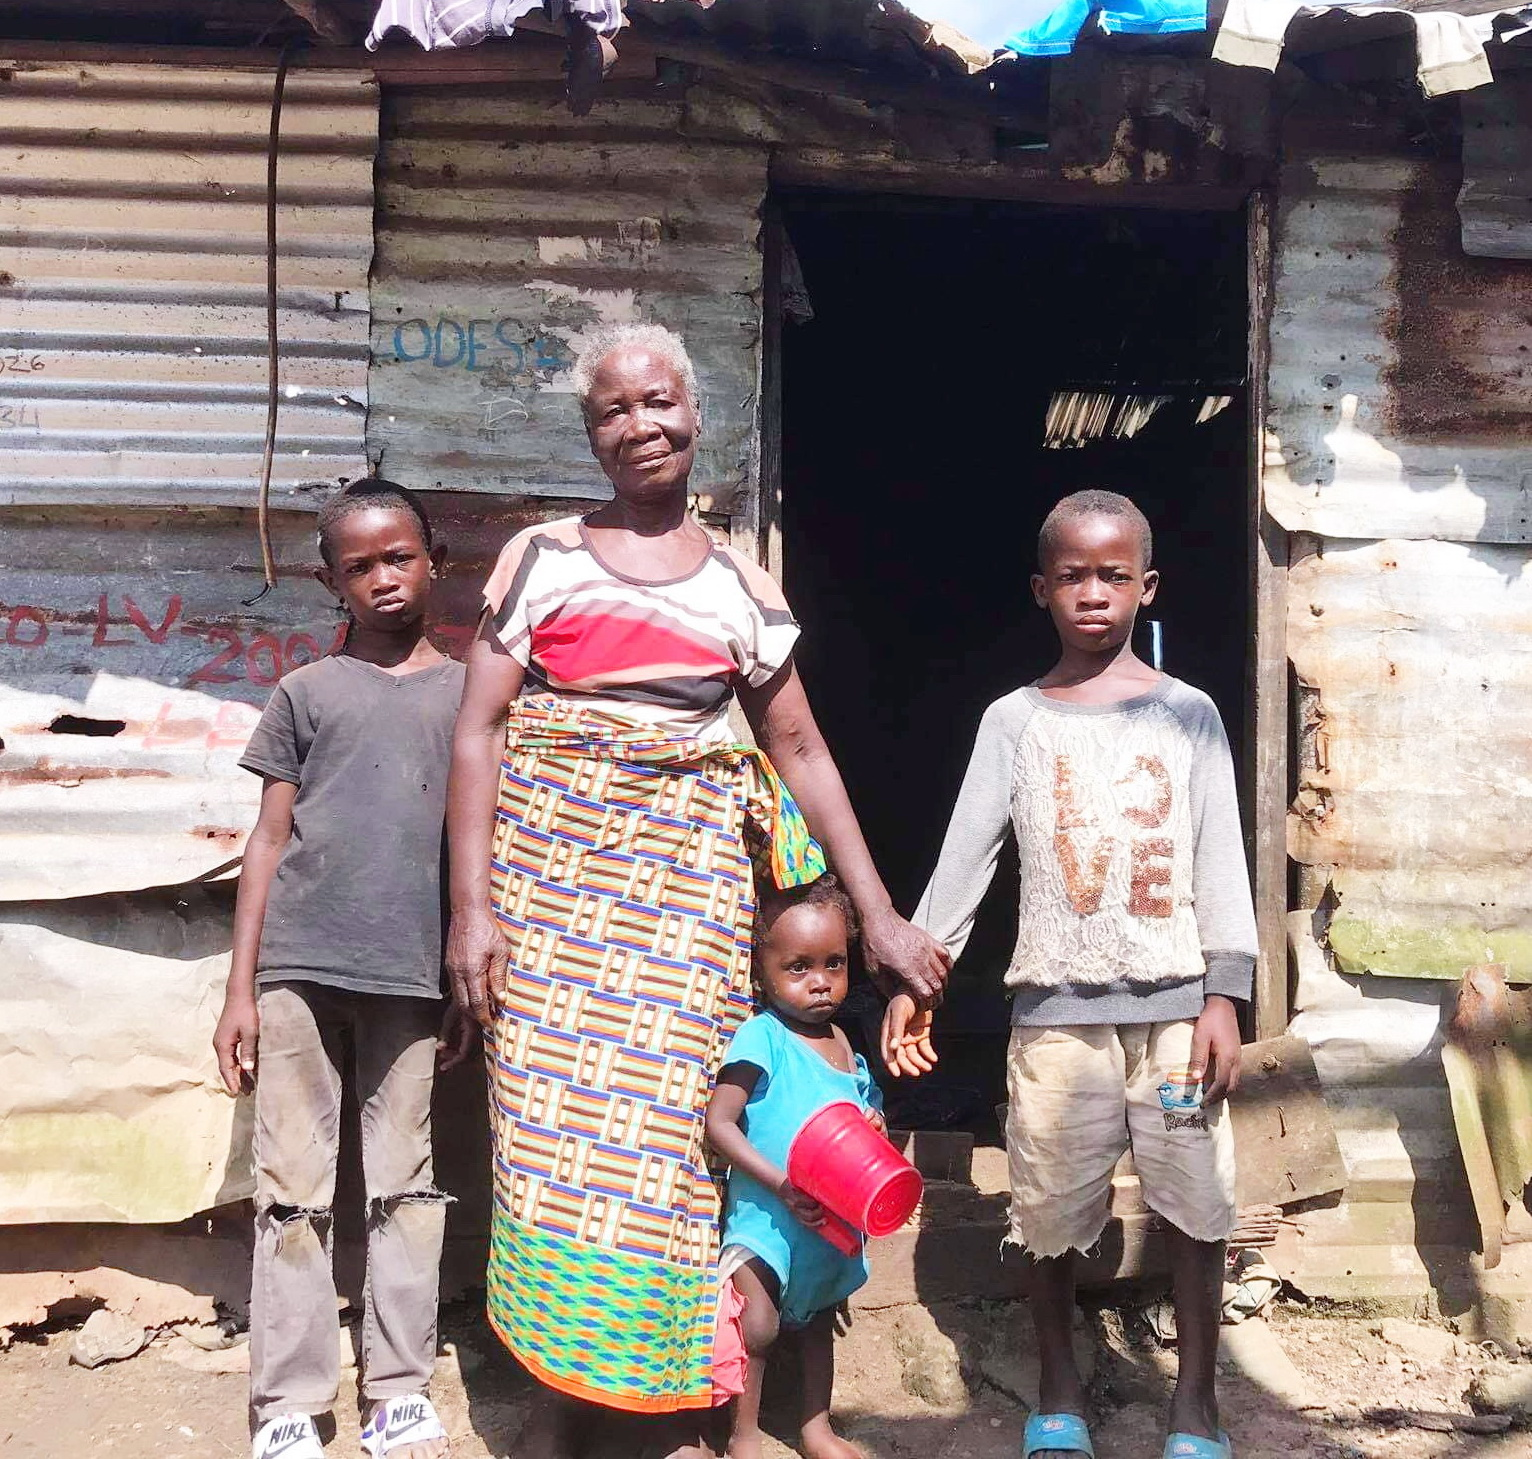 Grandma Esther Doe is on our list for the next widow to qualify for a new bed. These are her grand children. Grandma Esther is part of our widow gatherings twice a month.